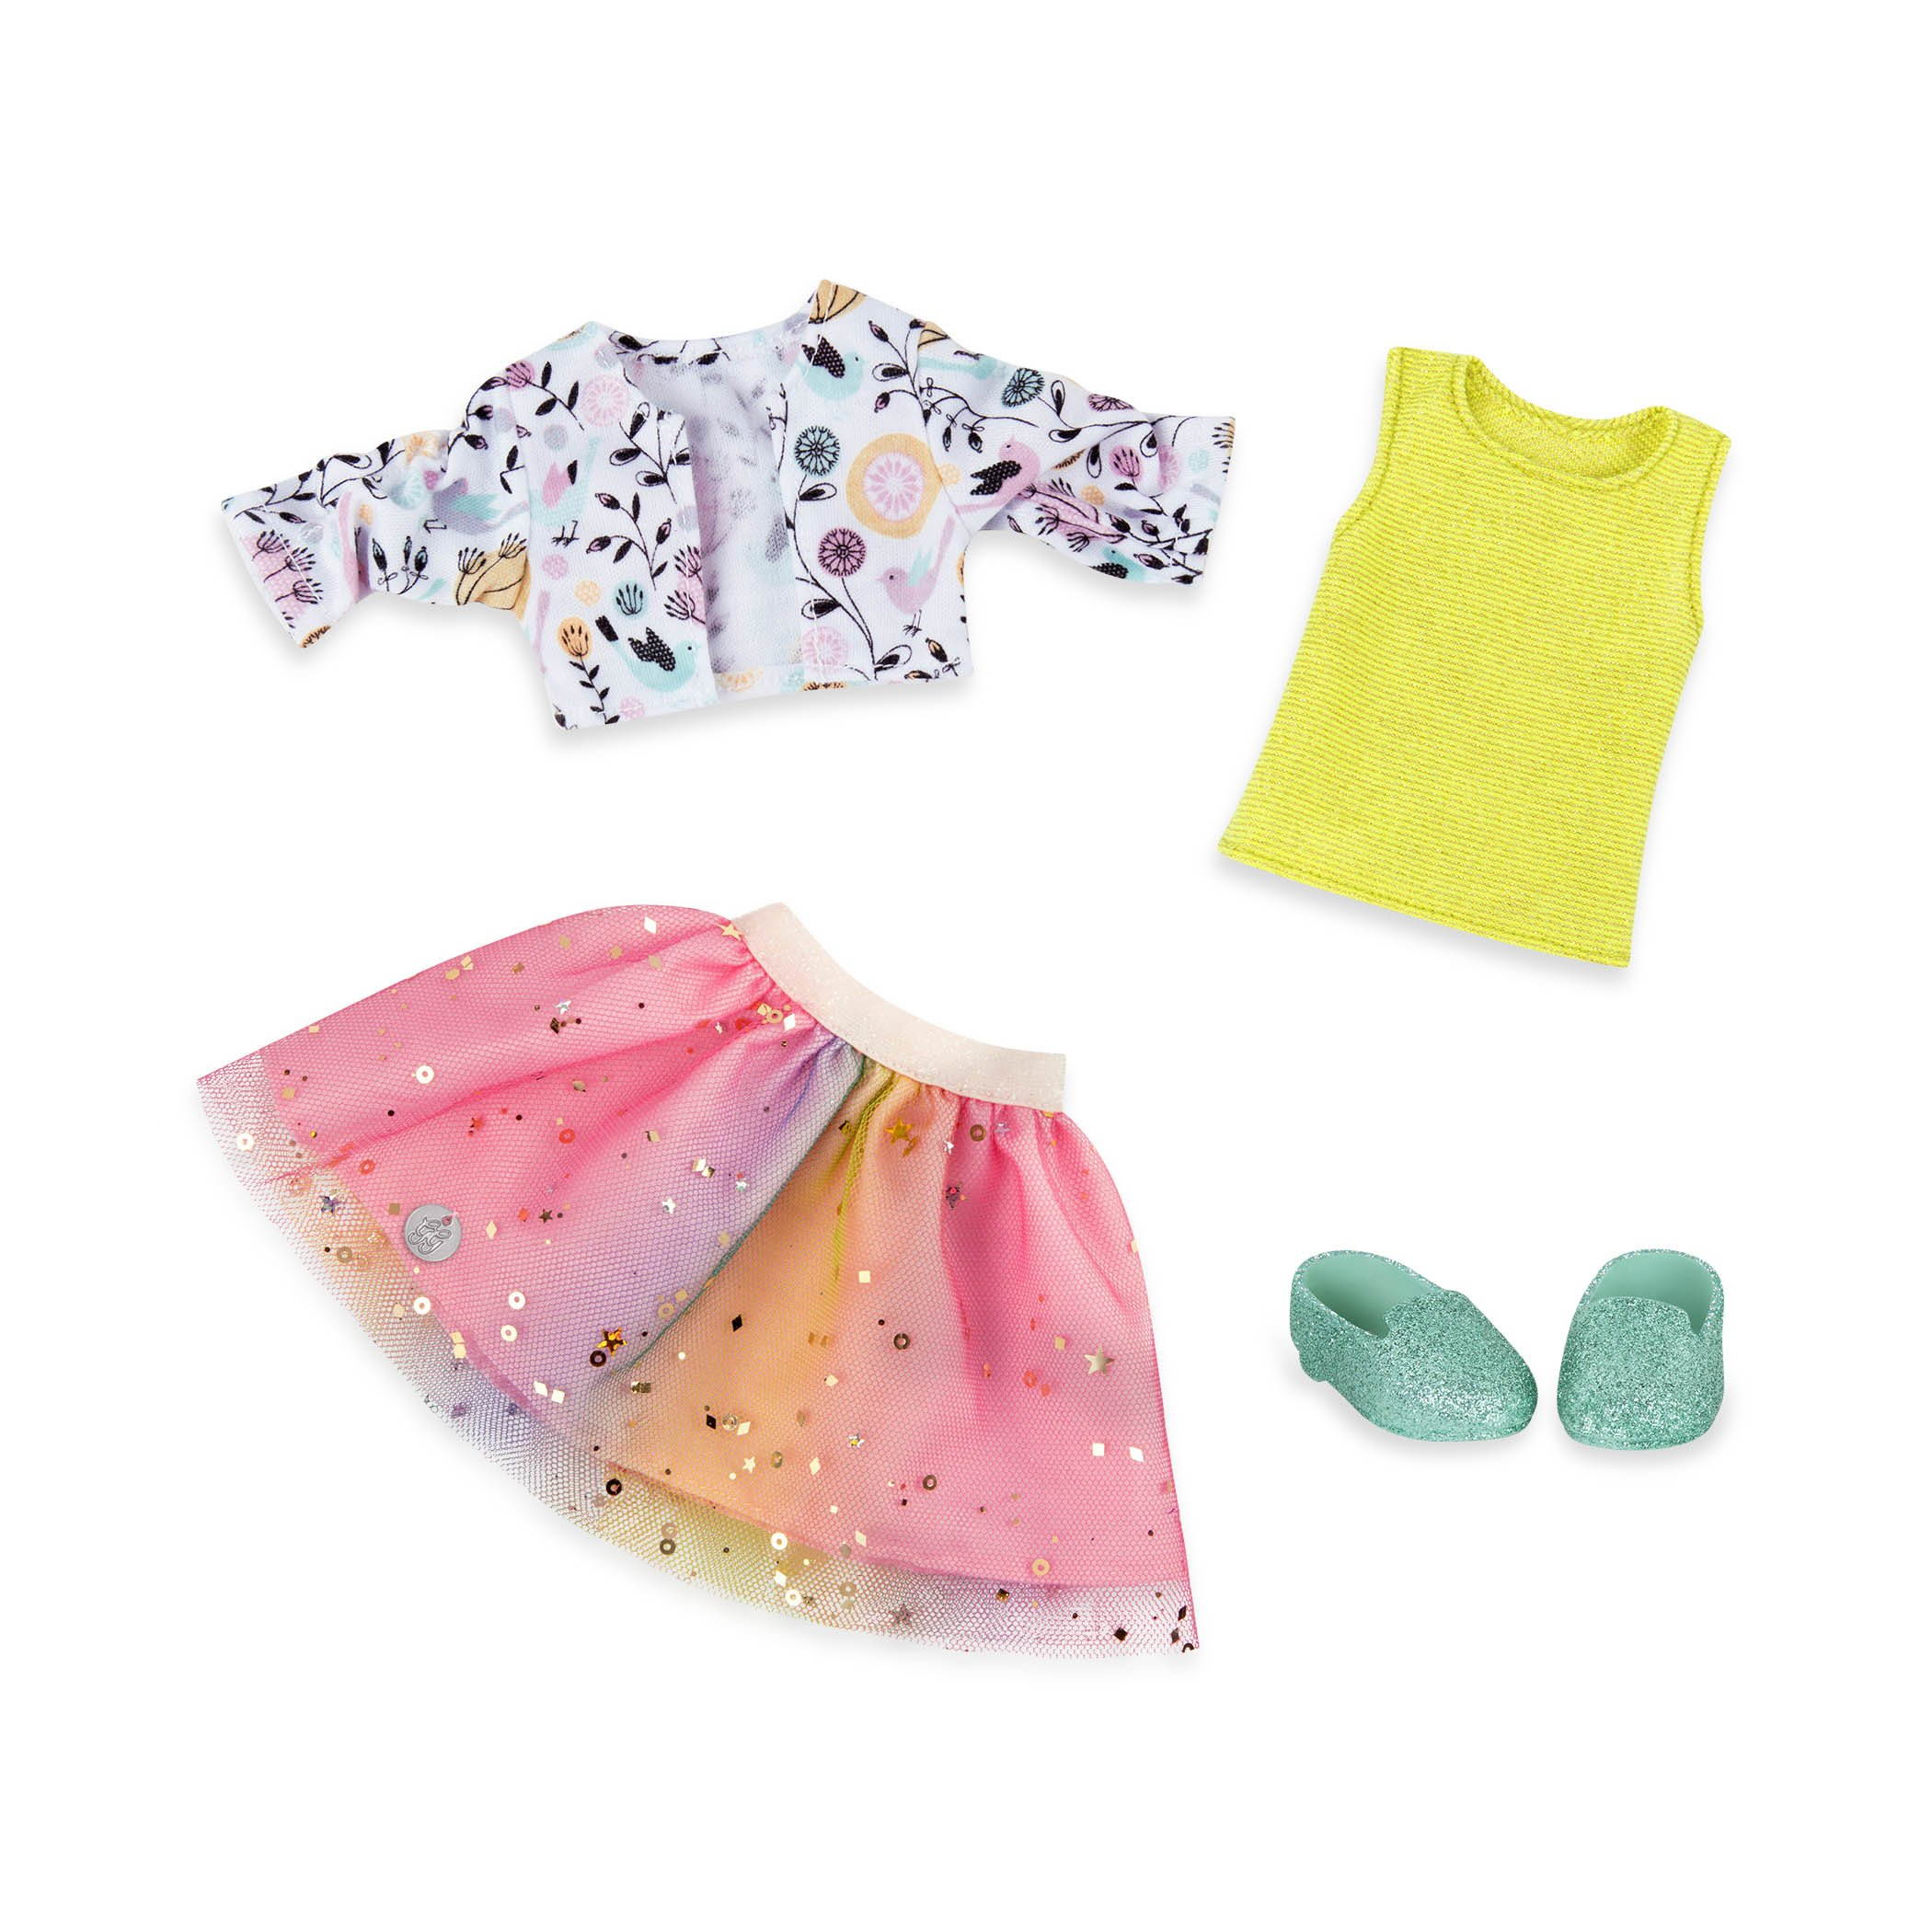 Glitter Girls by Battat - Shimmer Glimmer Urban Top & Tutu Regular Outfit - 14